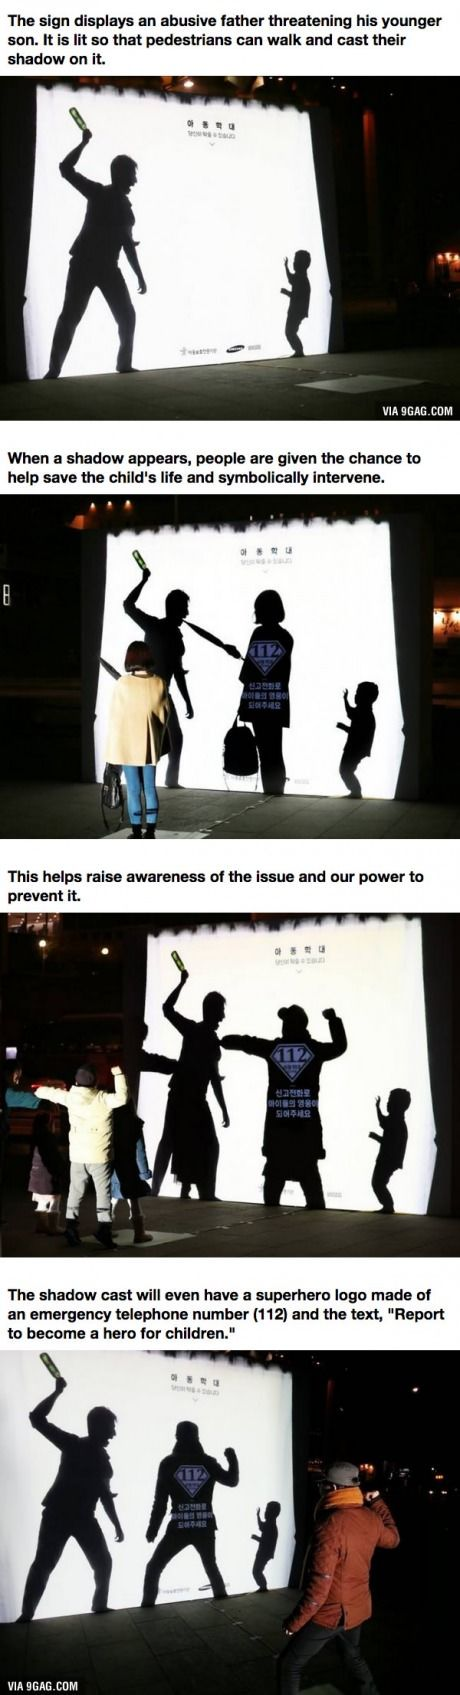 This Powerful Interactive Billboard Shows The Horrors Of Child Abuse